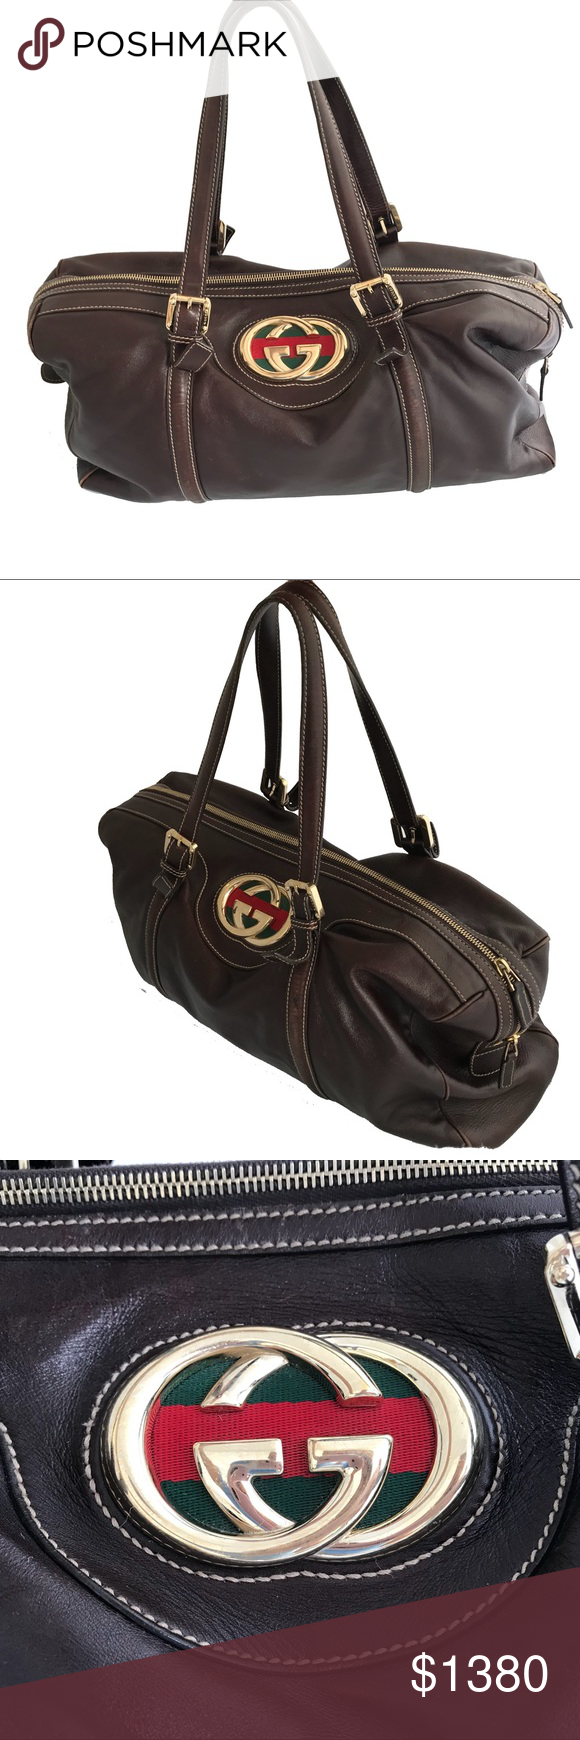 994acb3ee614 Classic Gucci Leather Handbag VINTAGE GUCCI iconic espresso leather tote in  excellent condition with gold logo and adjustable handles.